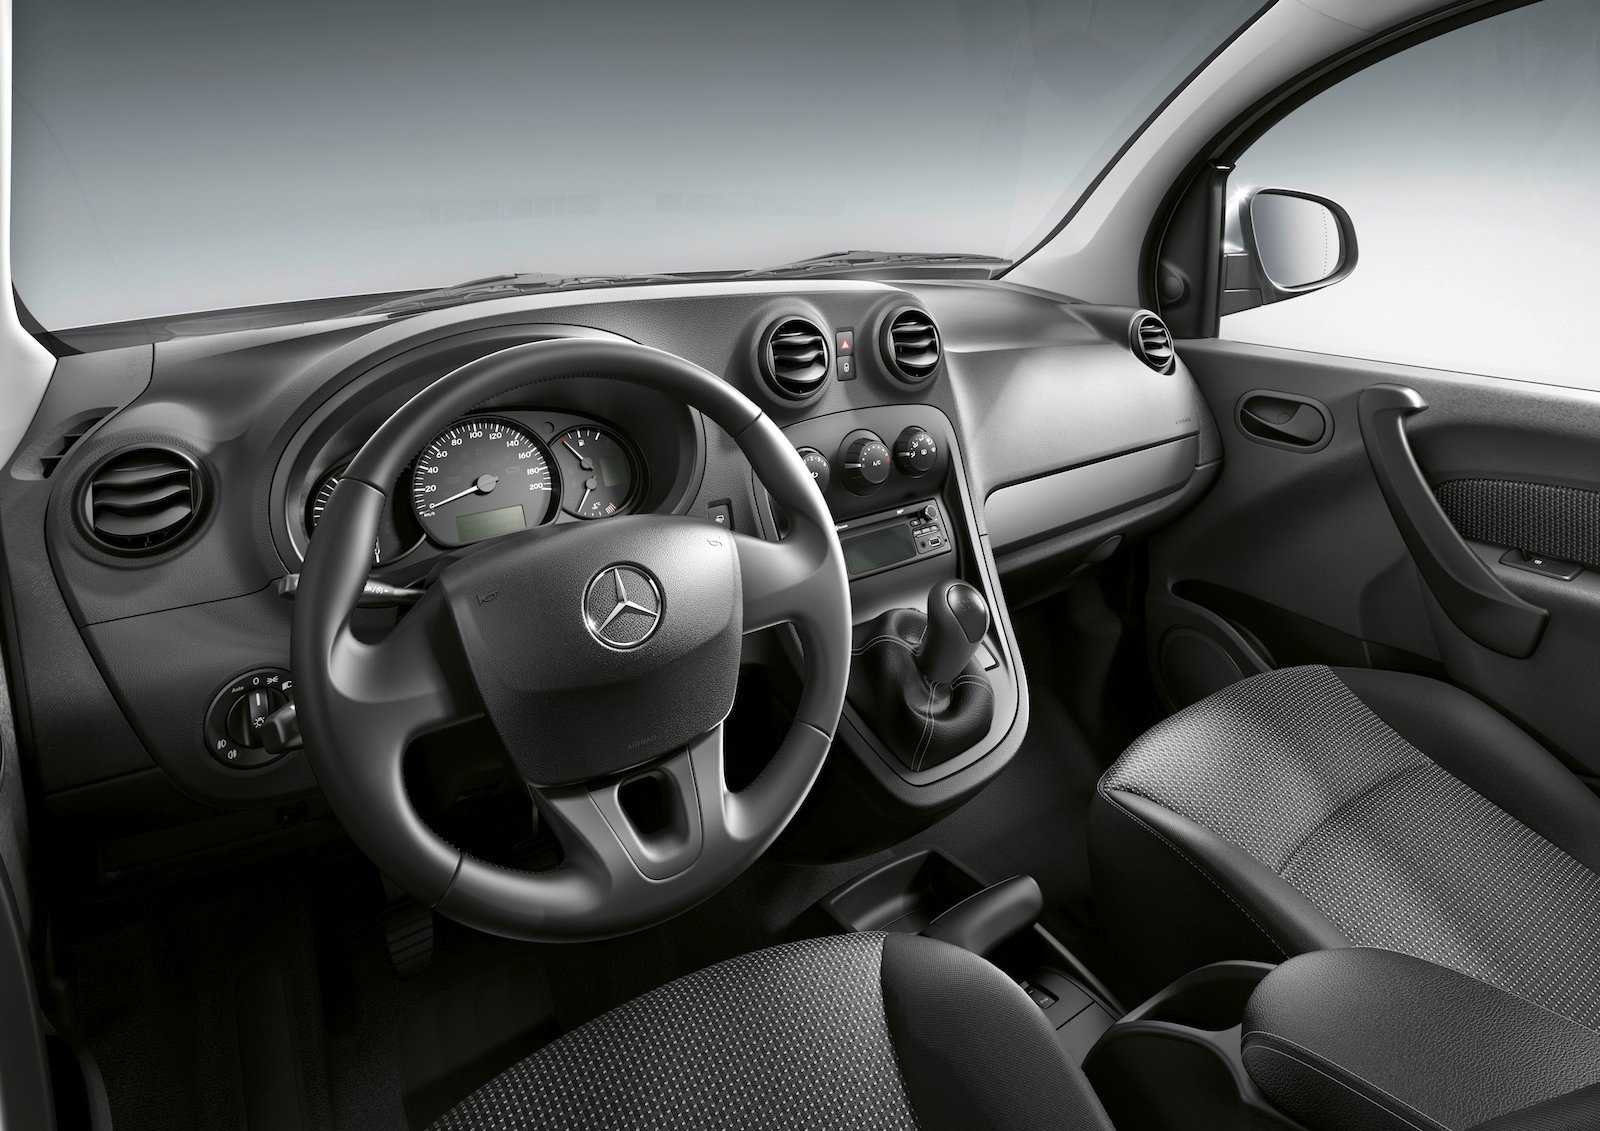 Mercedes Benz Citan Full Specifications Of Compact Work